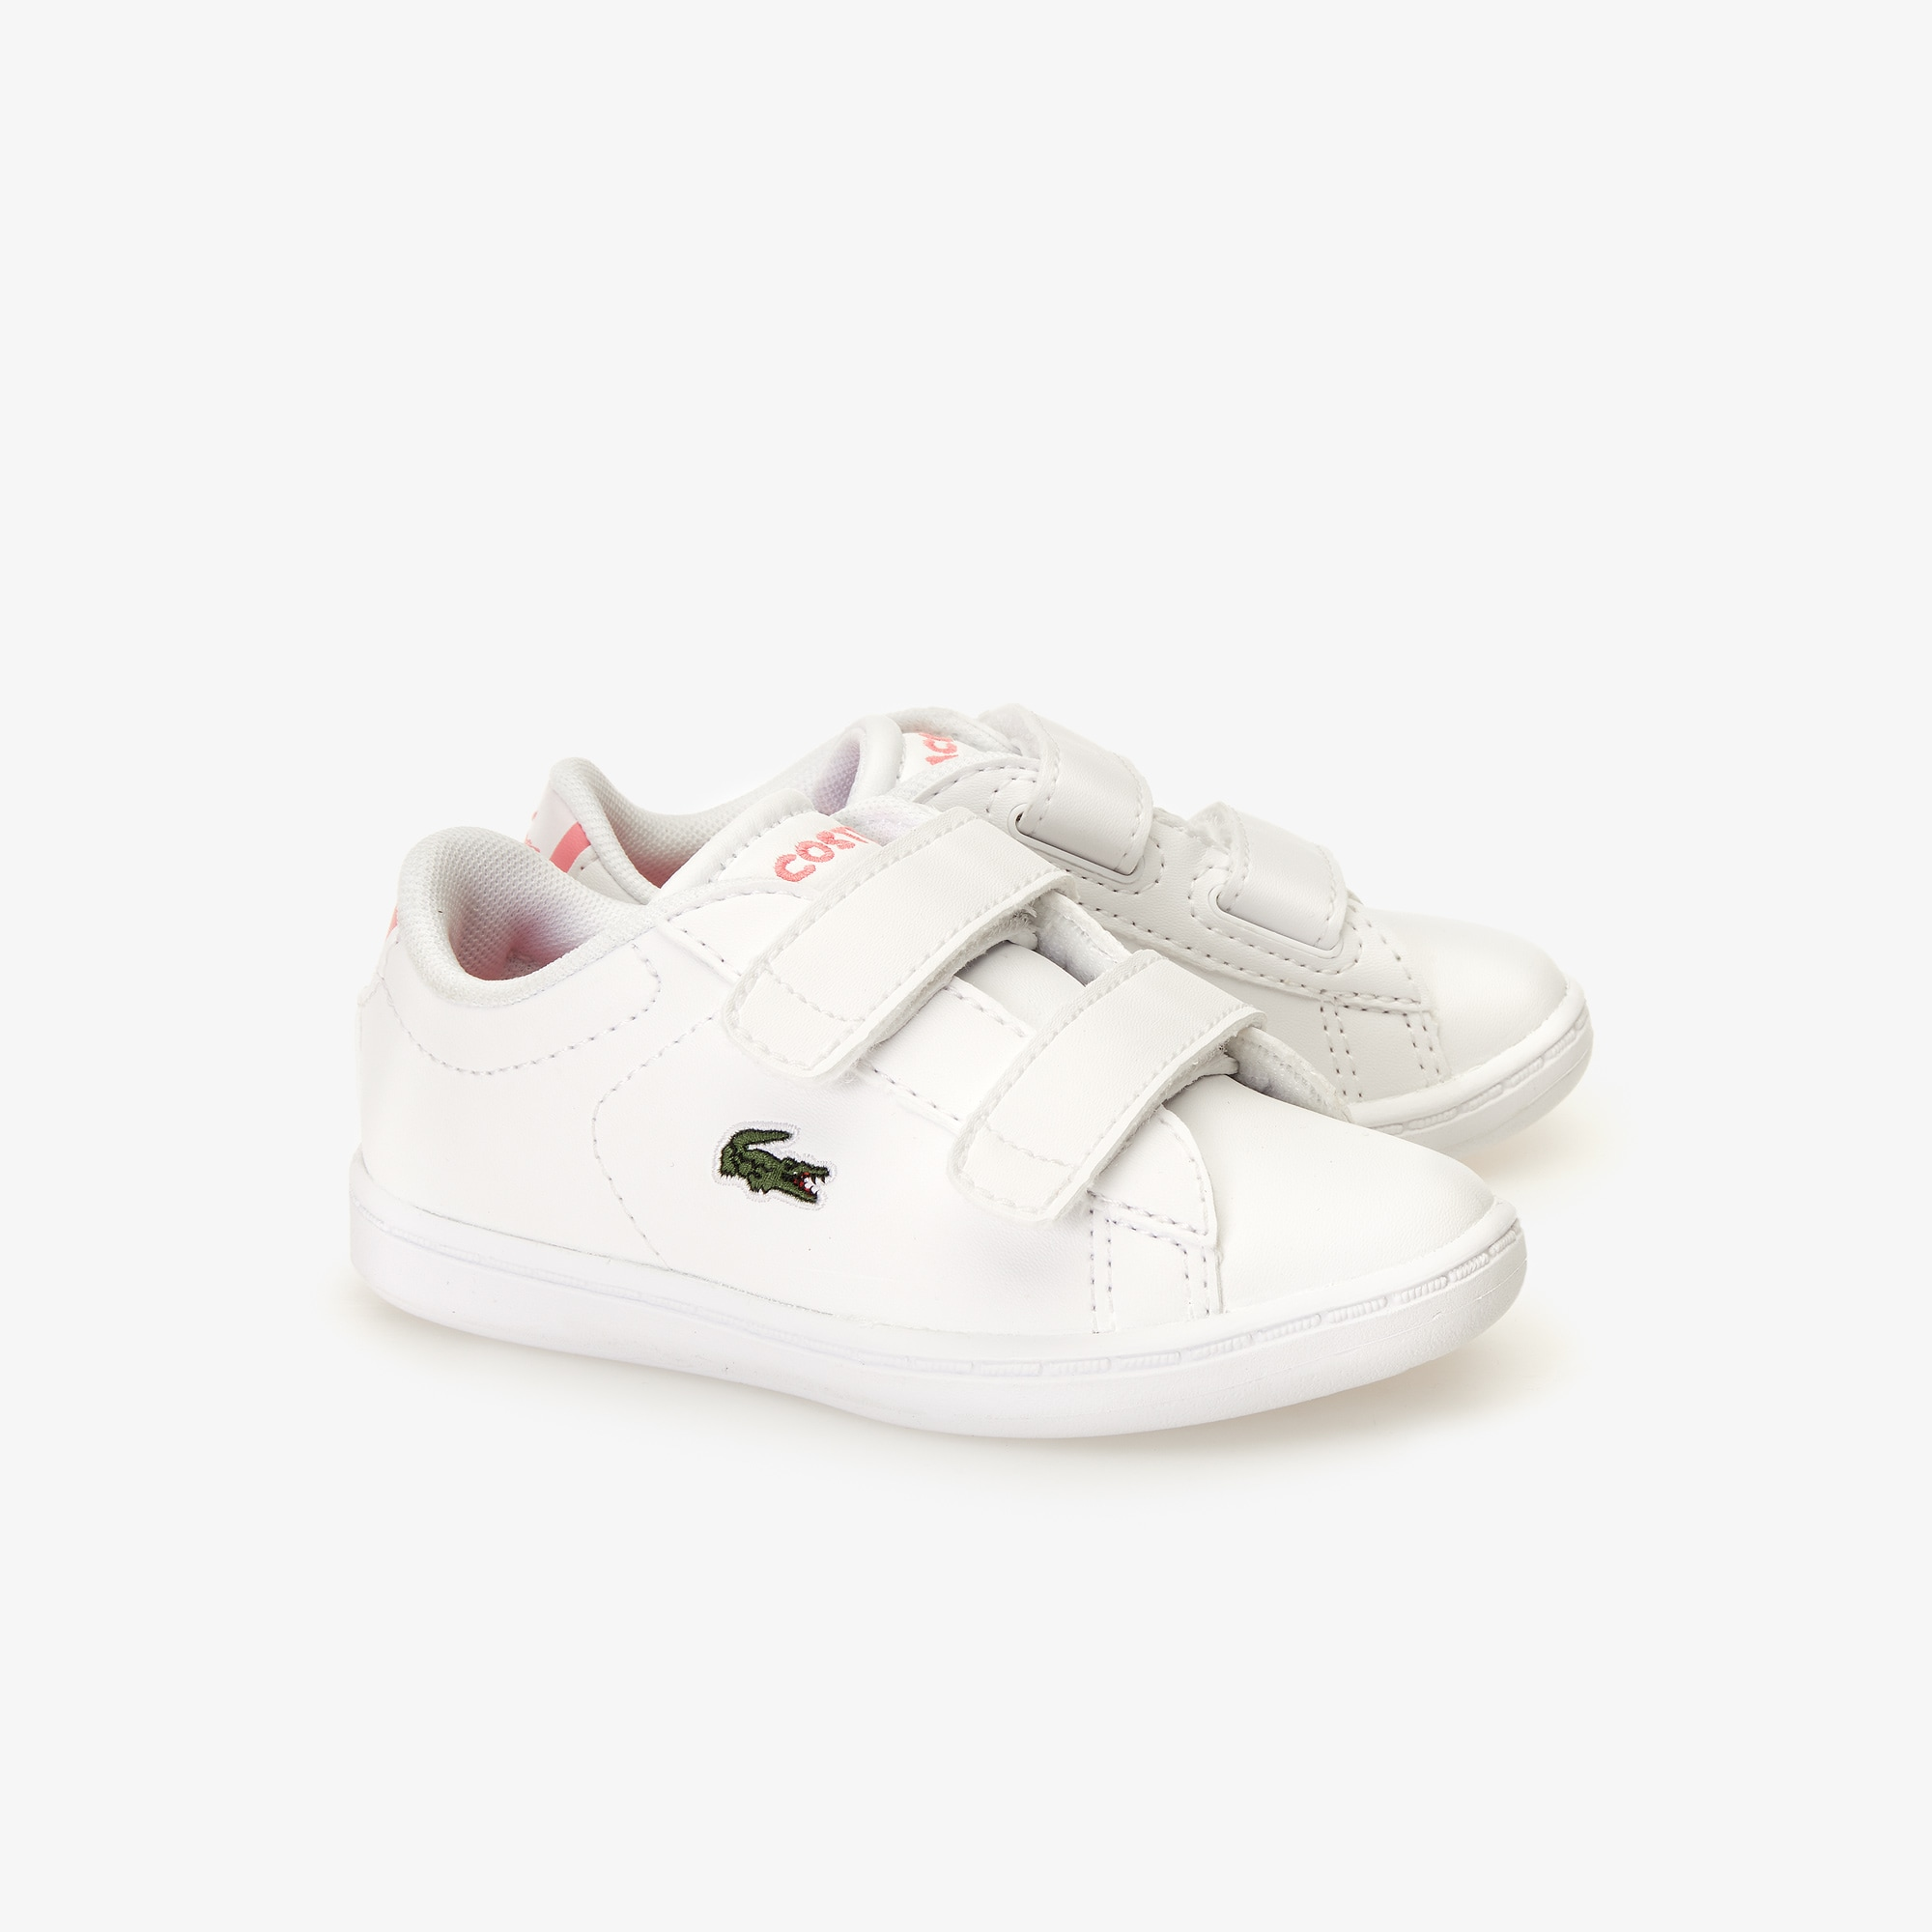 Sneakers Carnaby Evo bébé en synthétique